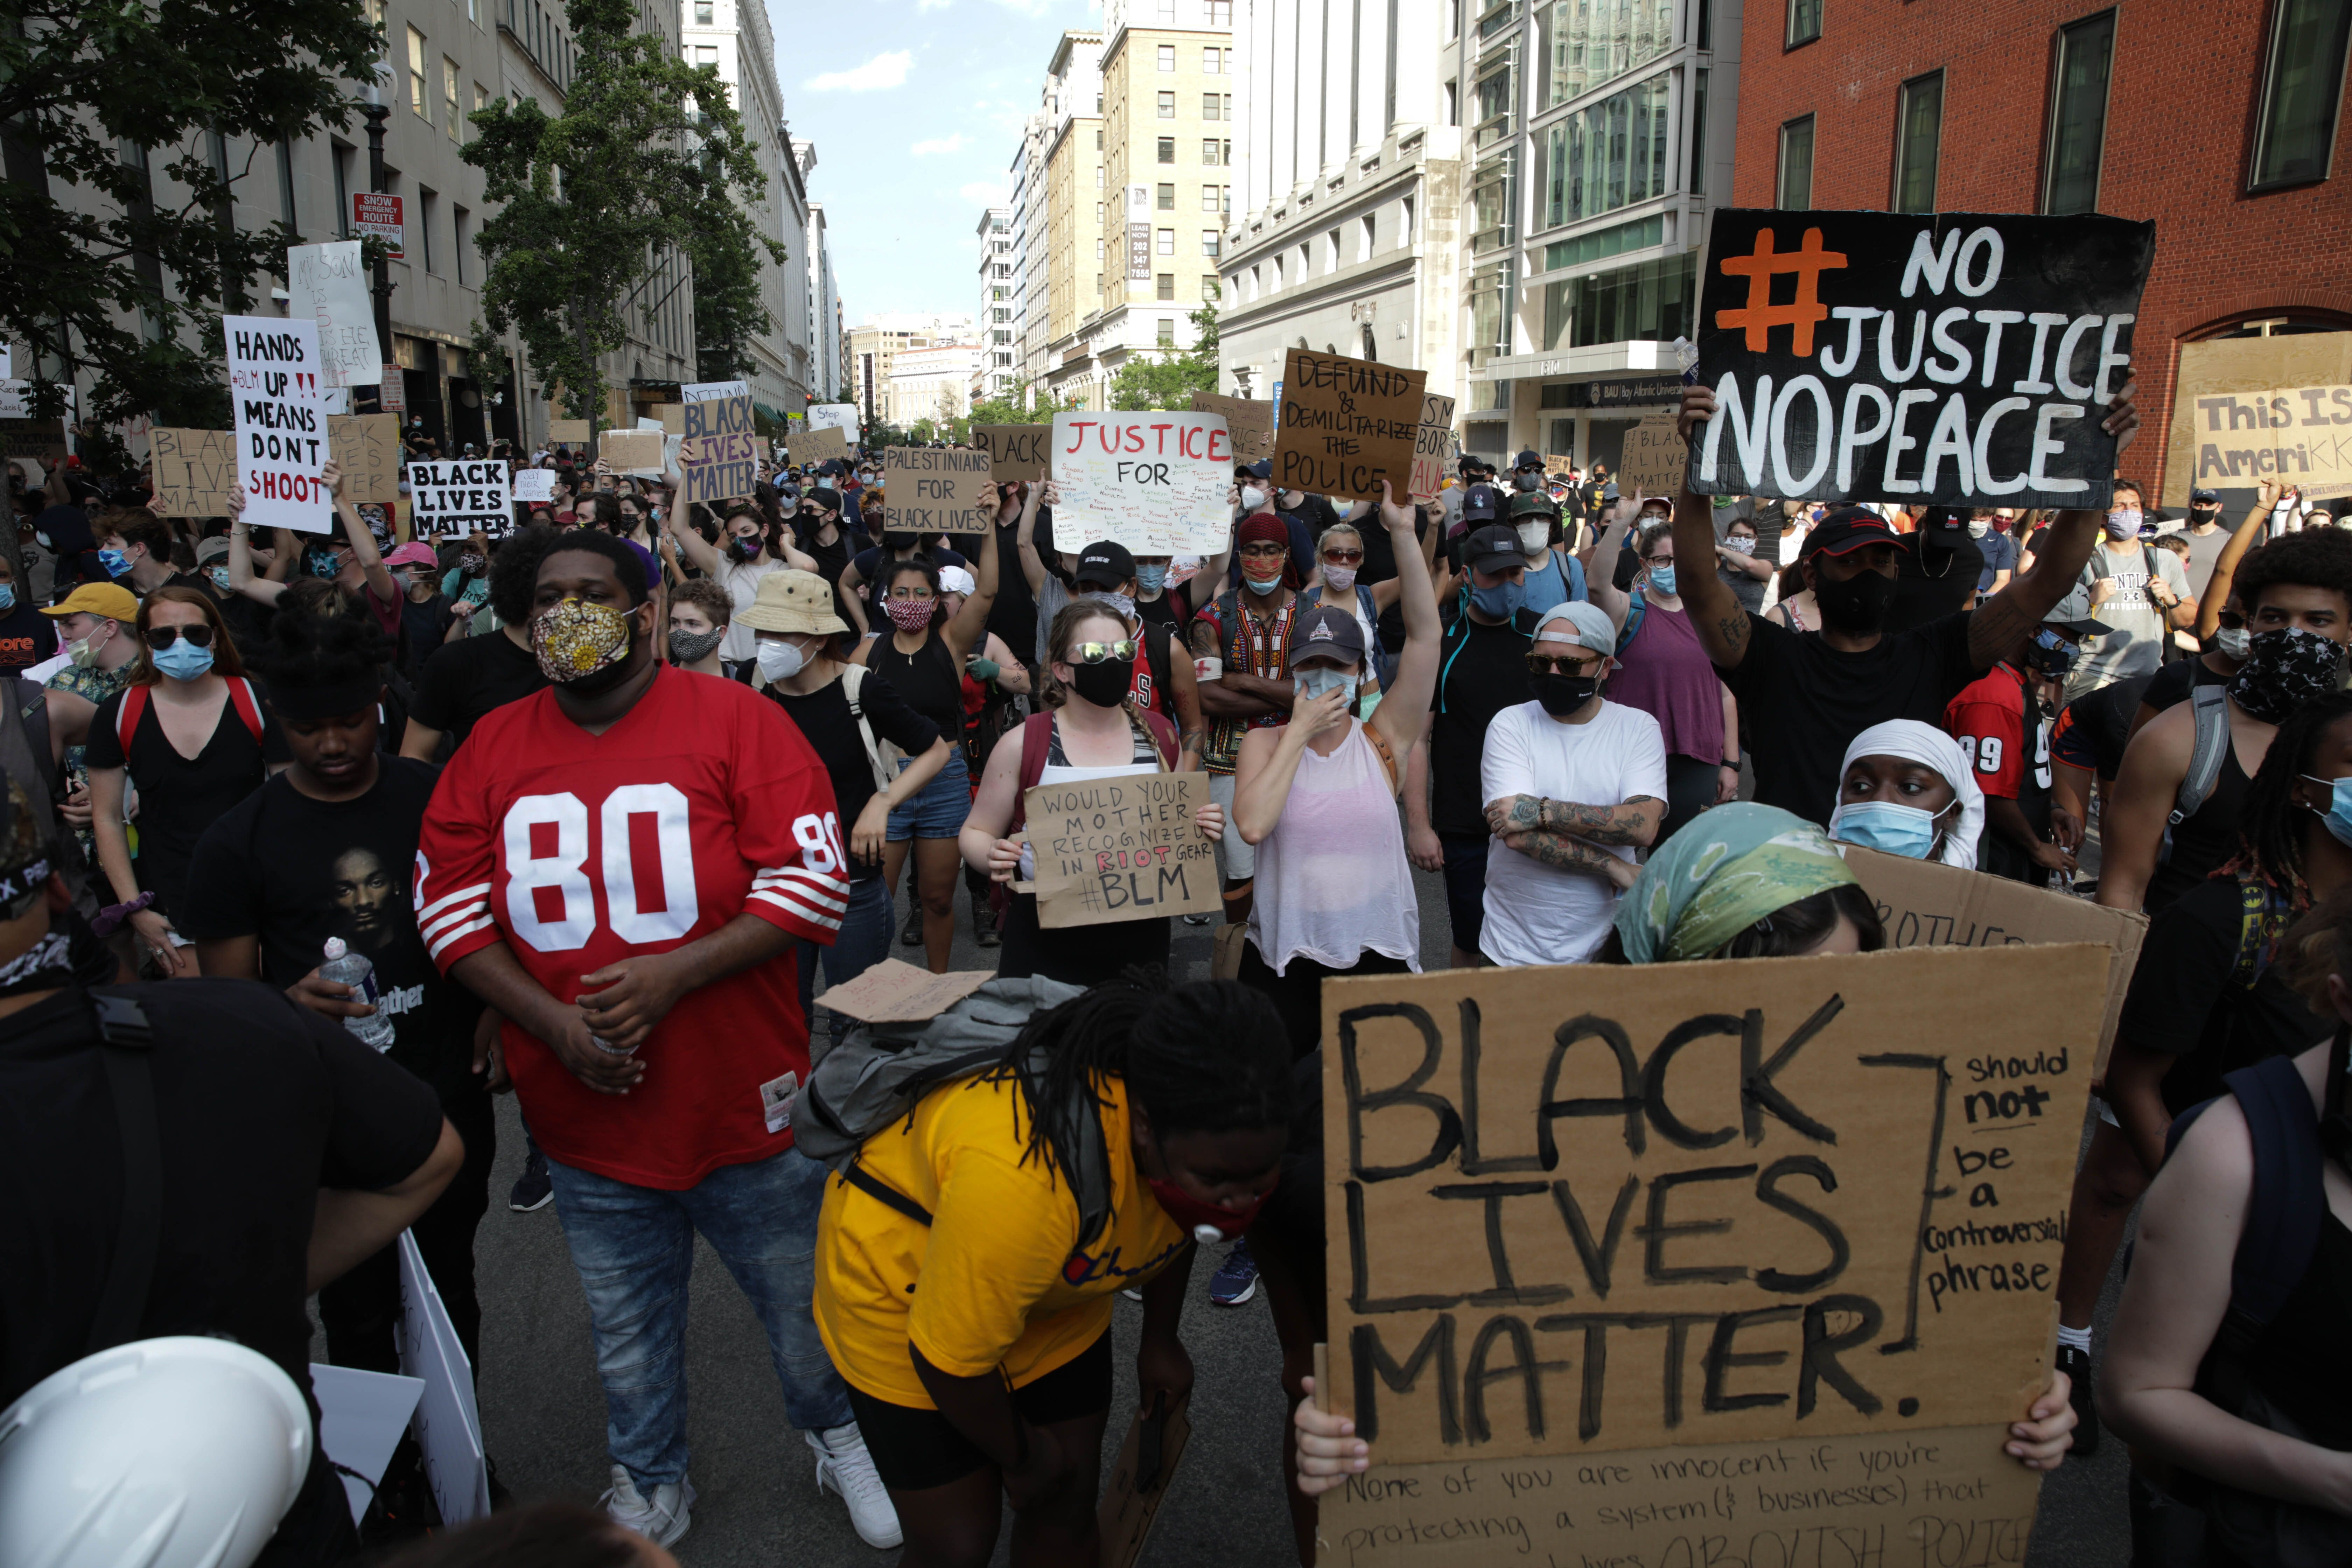 Protests over the death of George Floyd on the sixth consecutive day in Washington, DC, United States on June 3, 2020. | Source: Getty Images